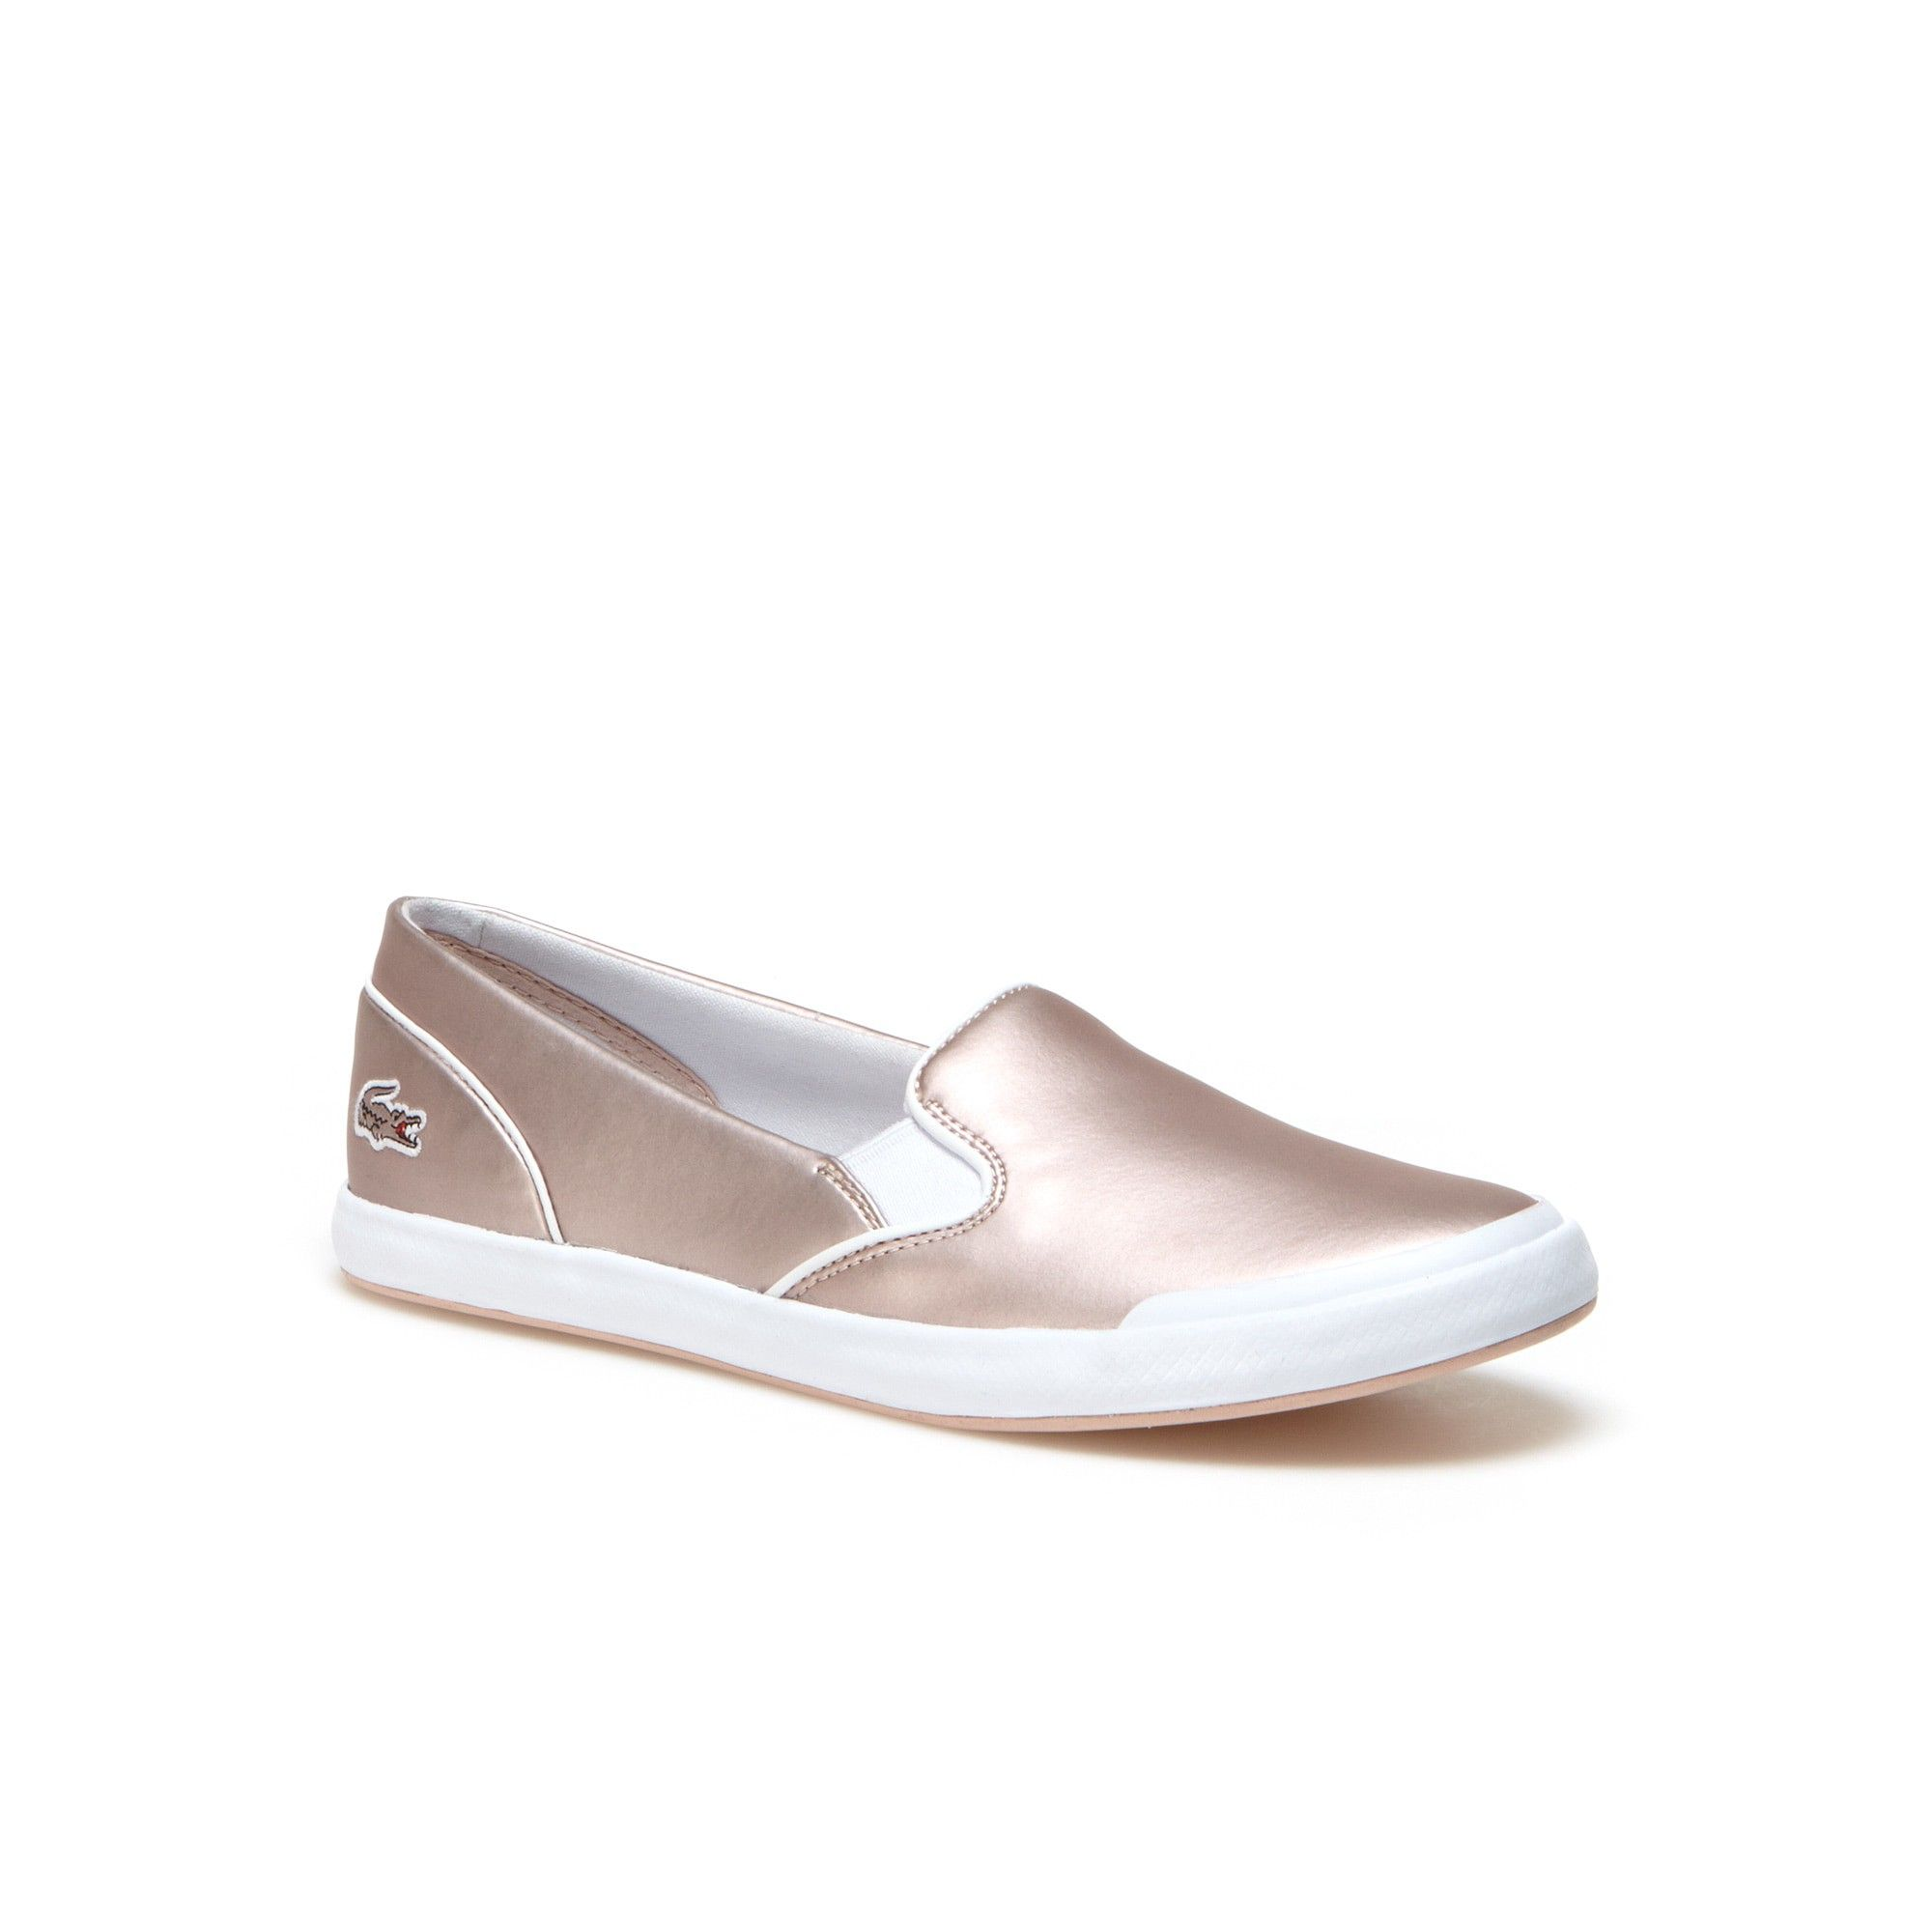 89f49bfd6ebe LACOSTE Women s Lancelle Matte Metallized Slip-Ons - light pink.  lacoste   shoes